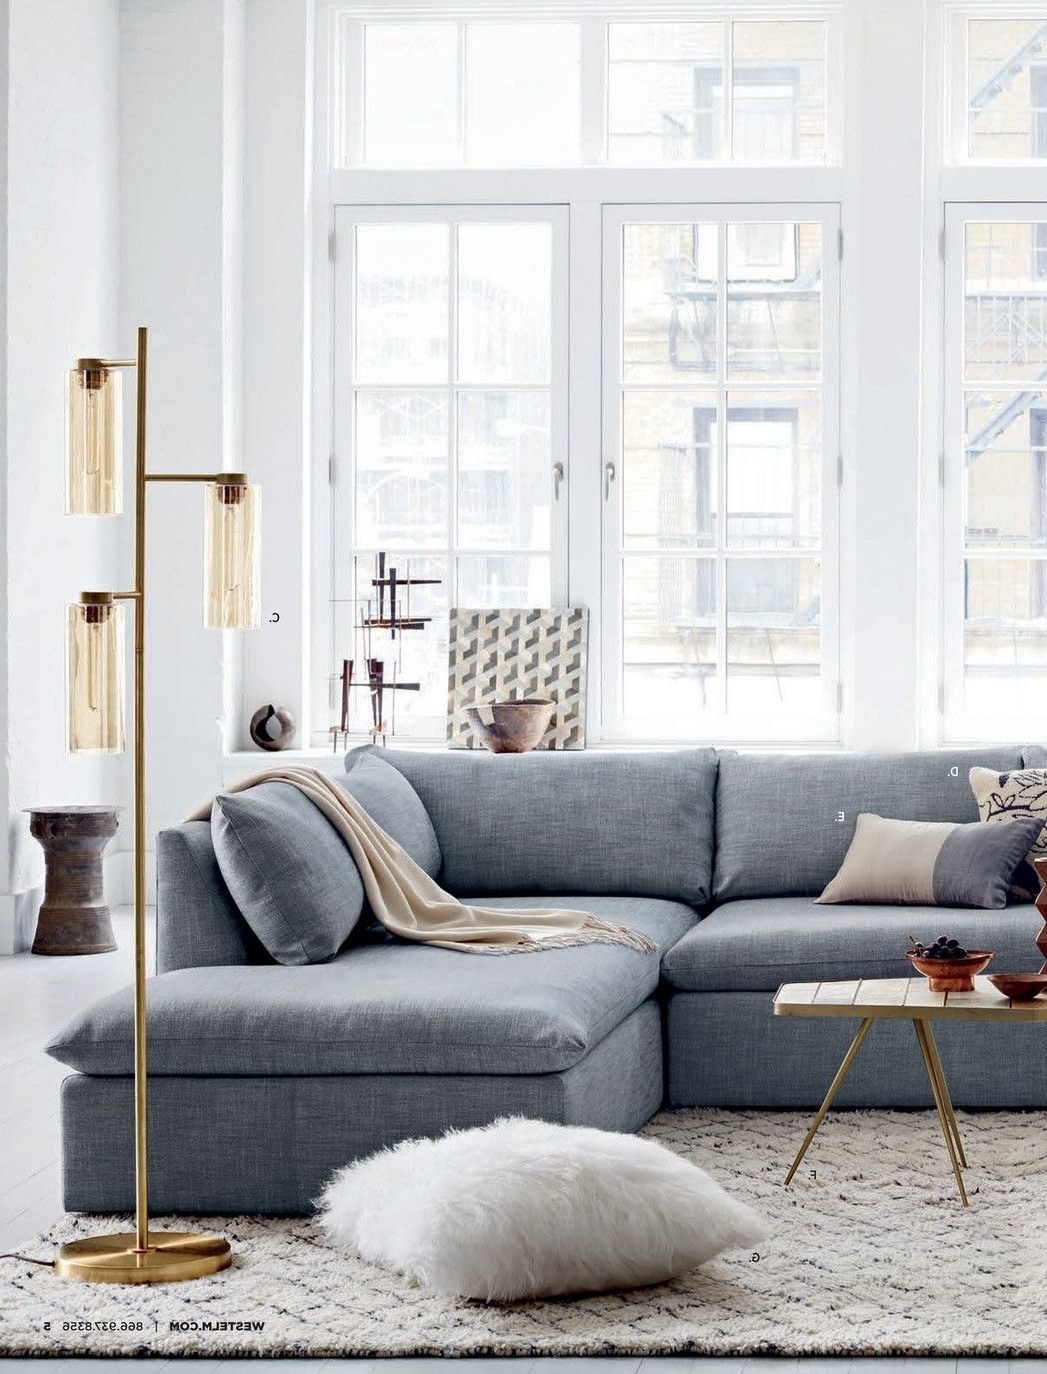 West Elm Sectional Sofas For Famous Add Allure To Your Living Room With These Tripod Floor Lamps (View 10 of 15)